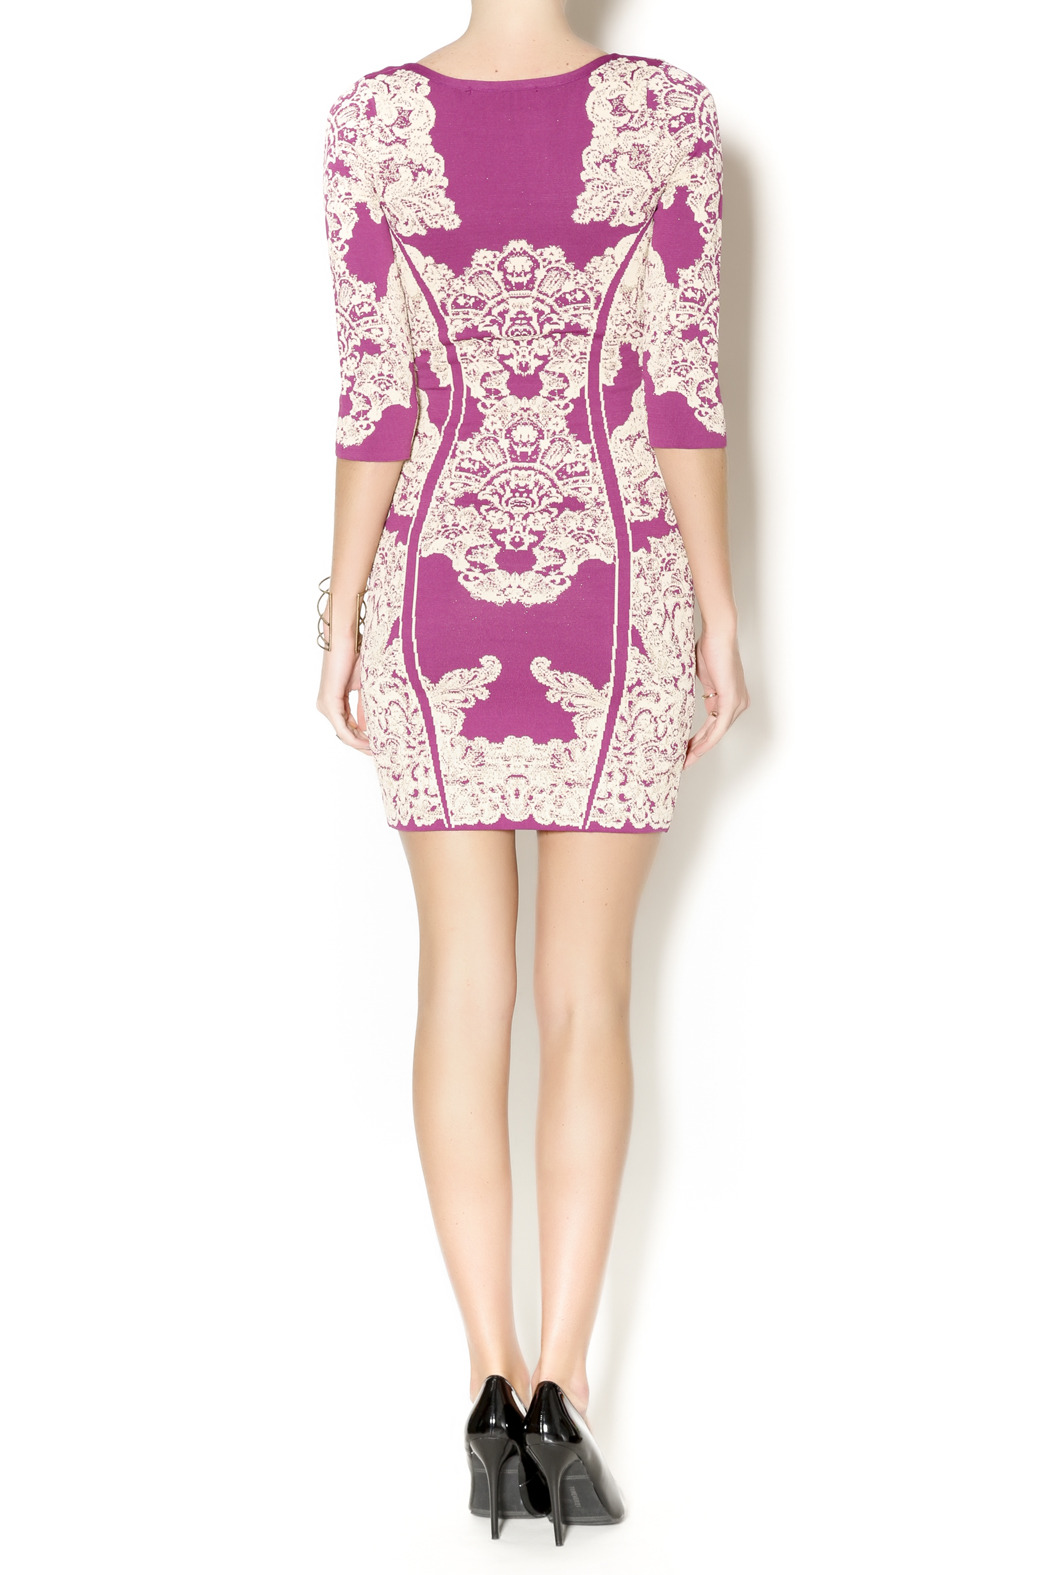 Wow Couture Damask Body Con Dress - Side Cropped Image